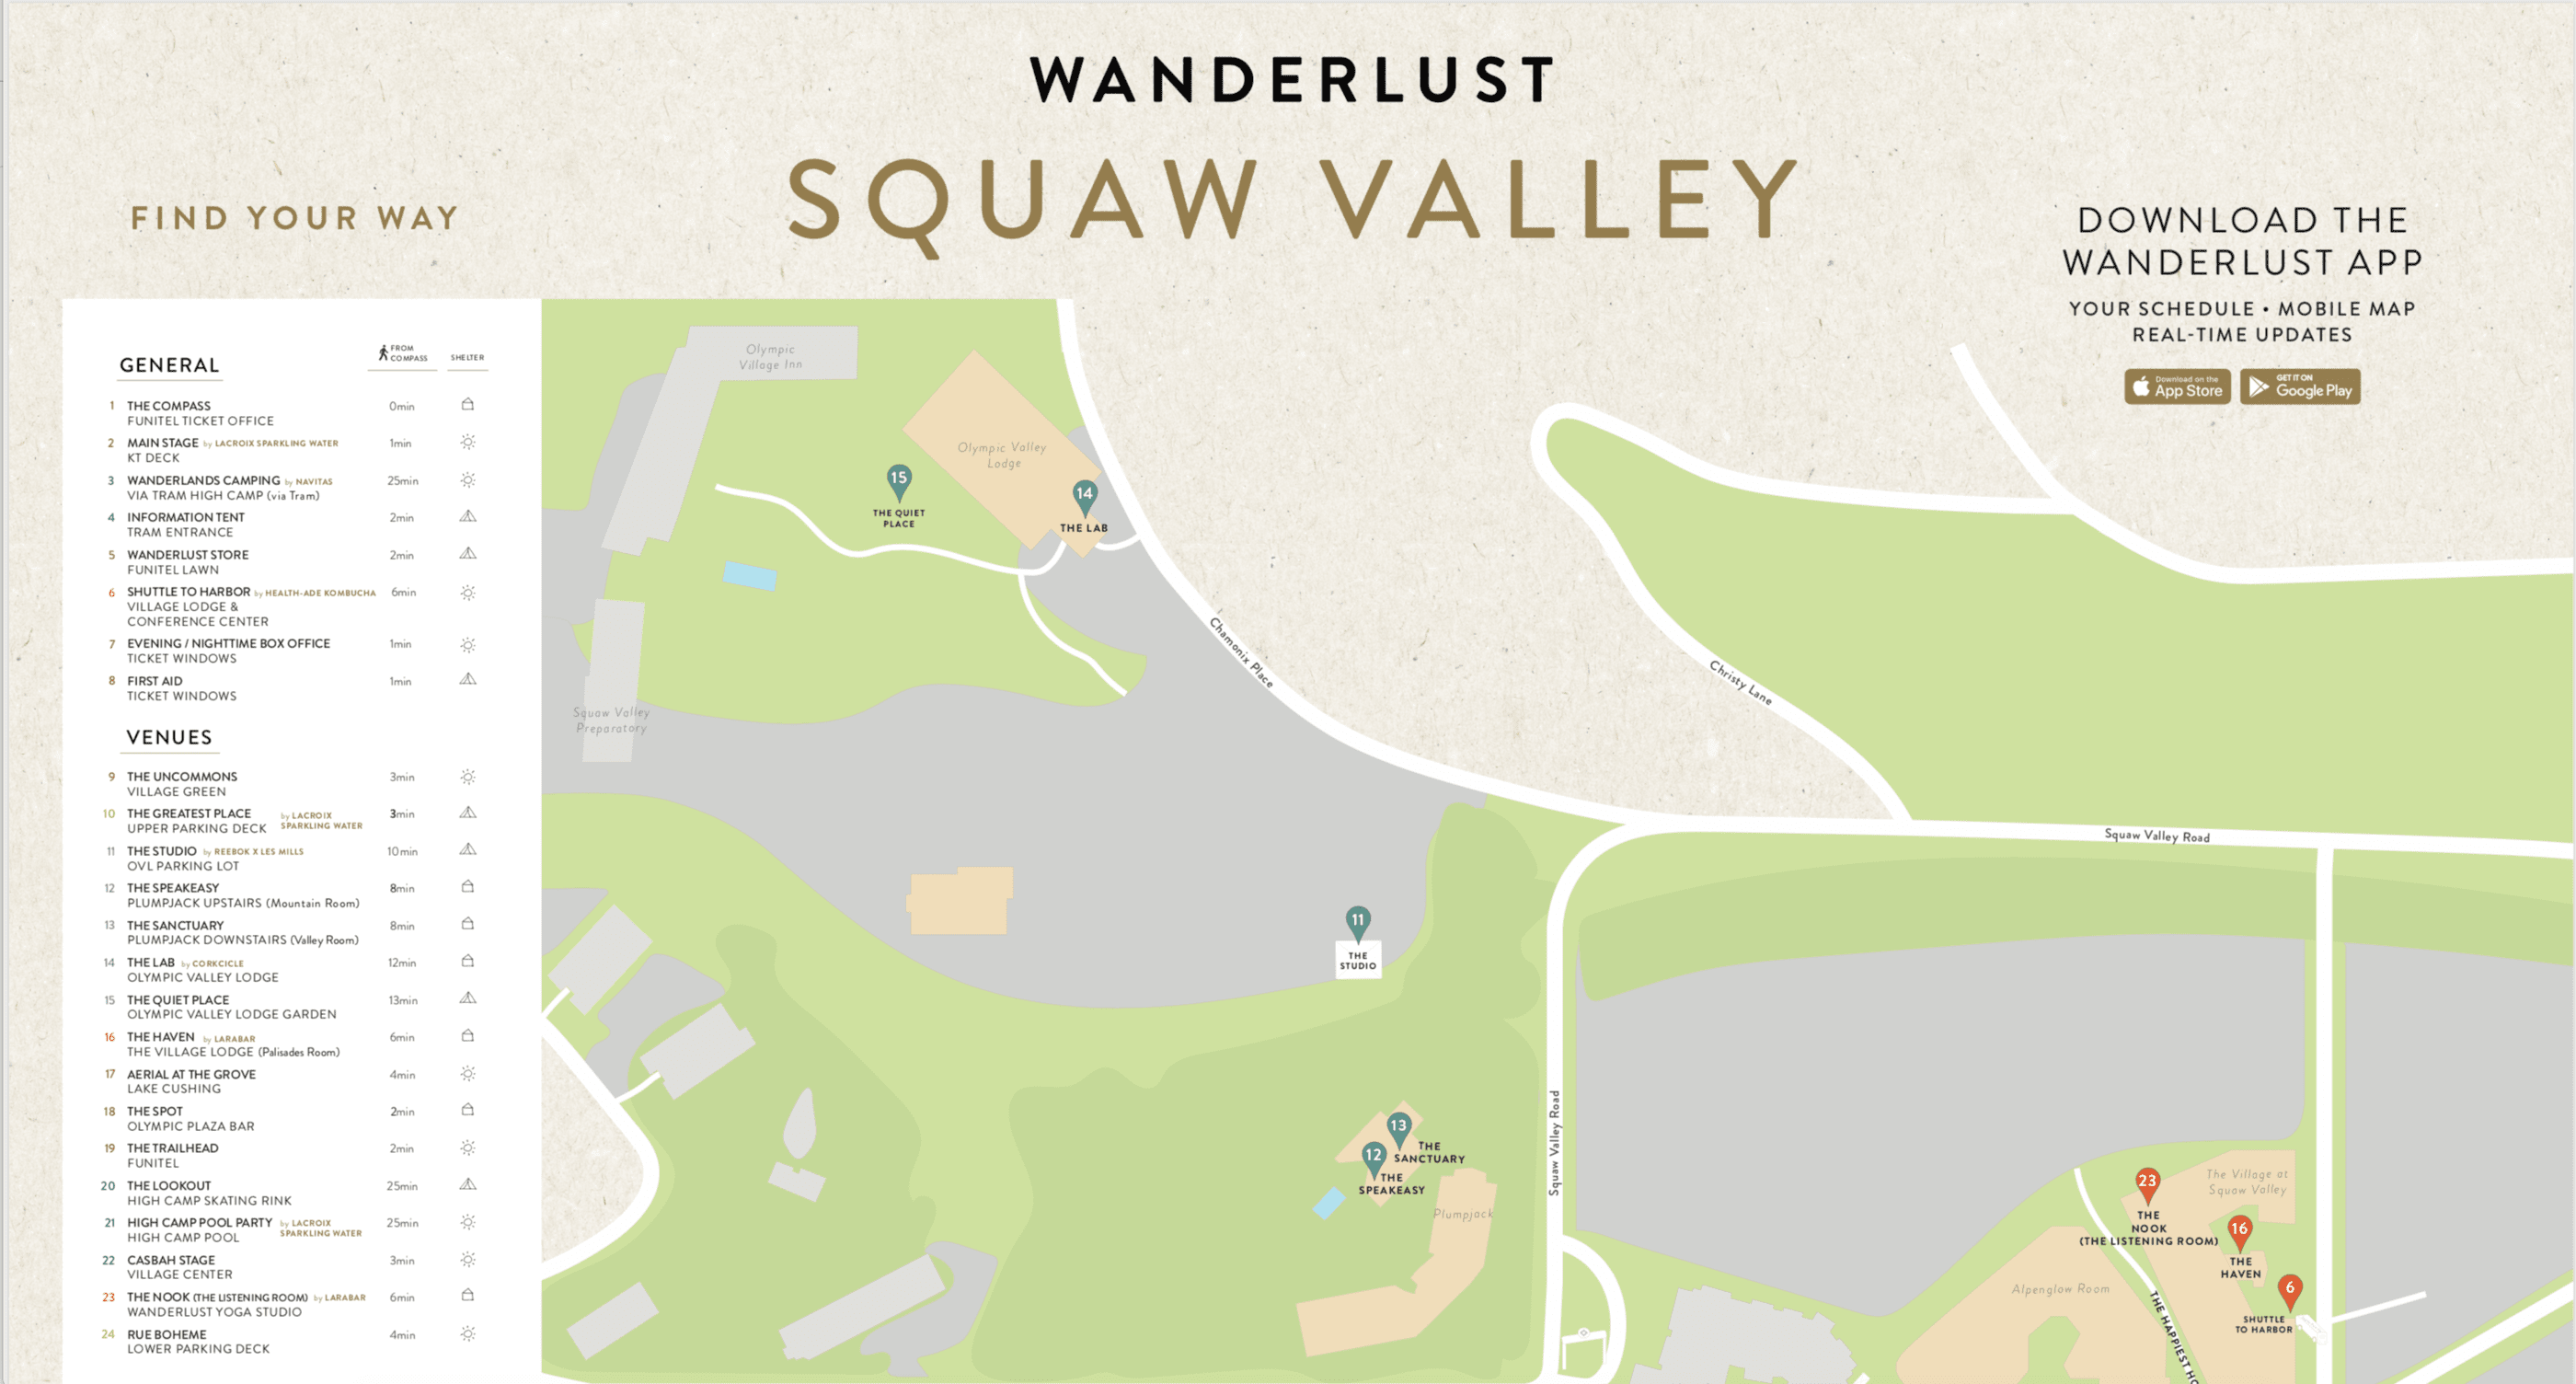 Small thumbnail image of part of the squaw 2019 map.